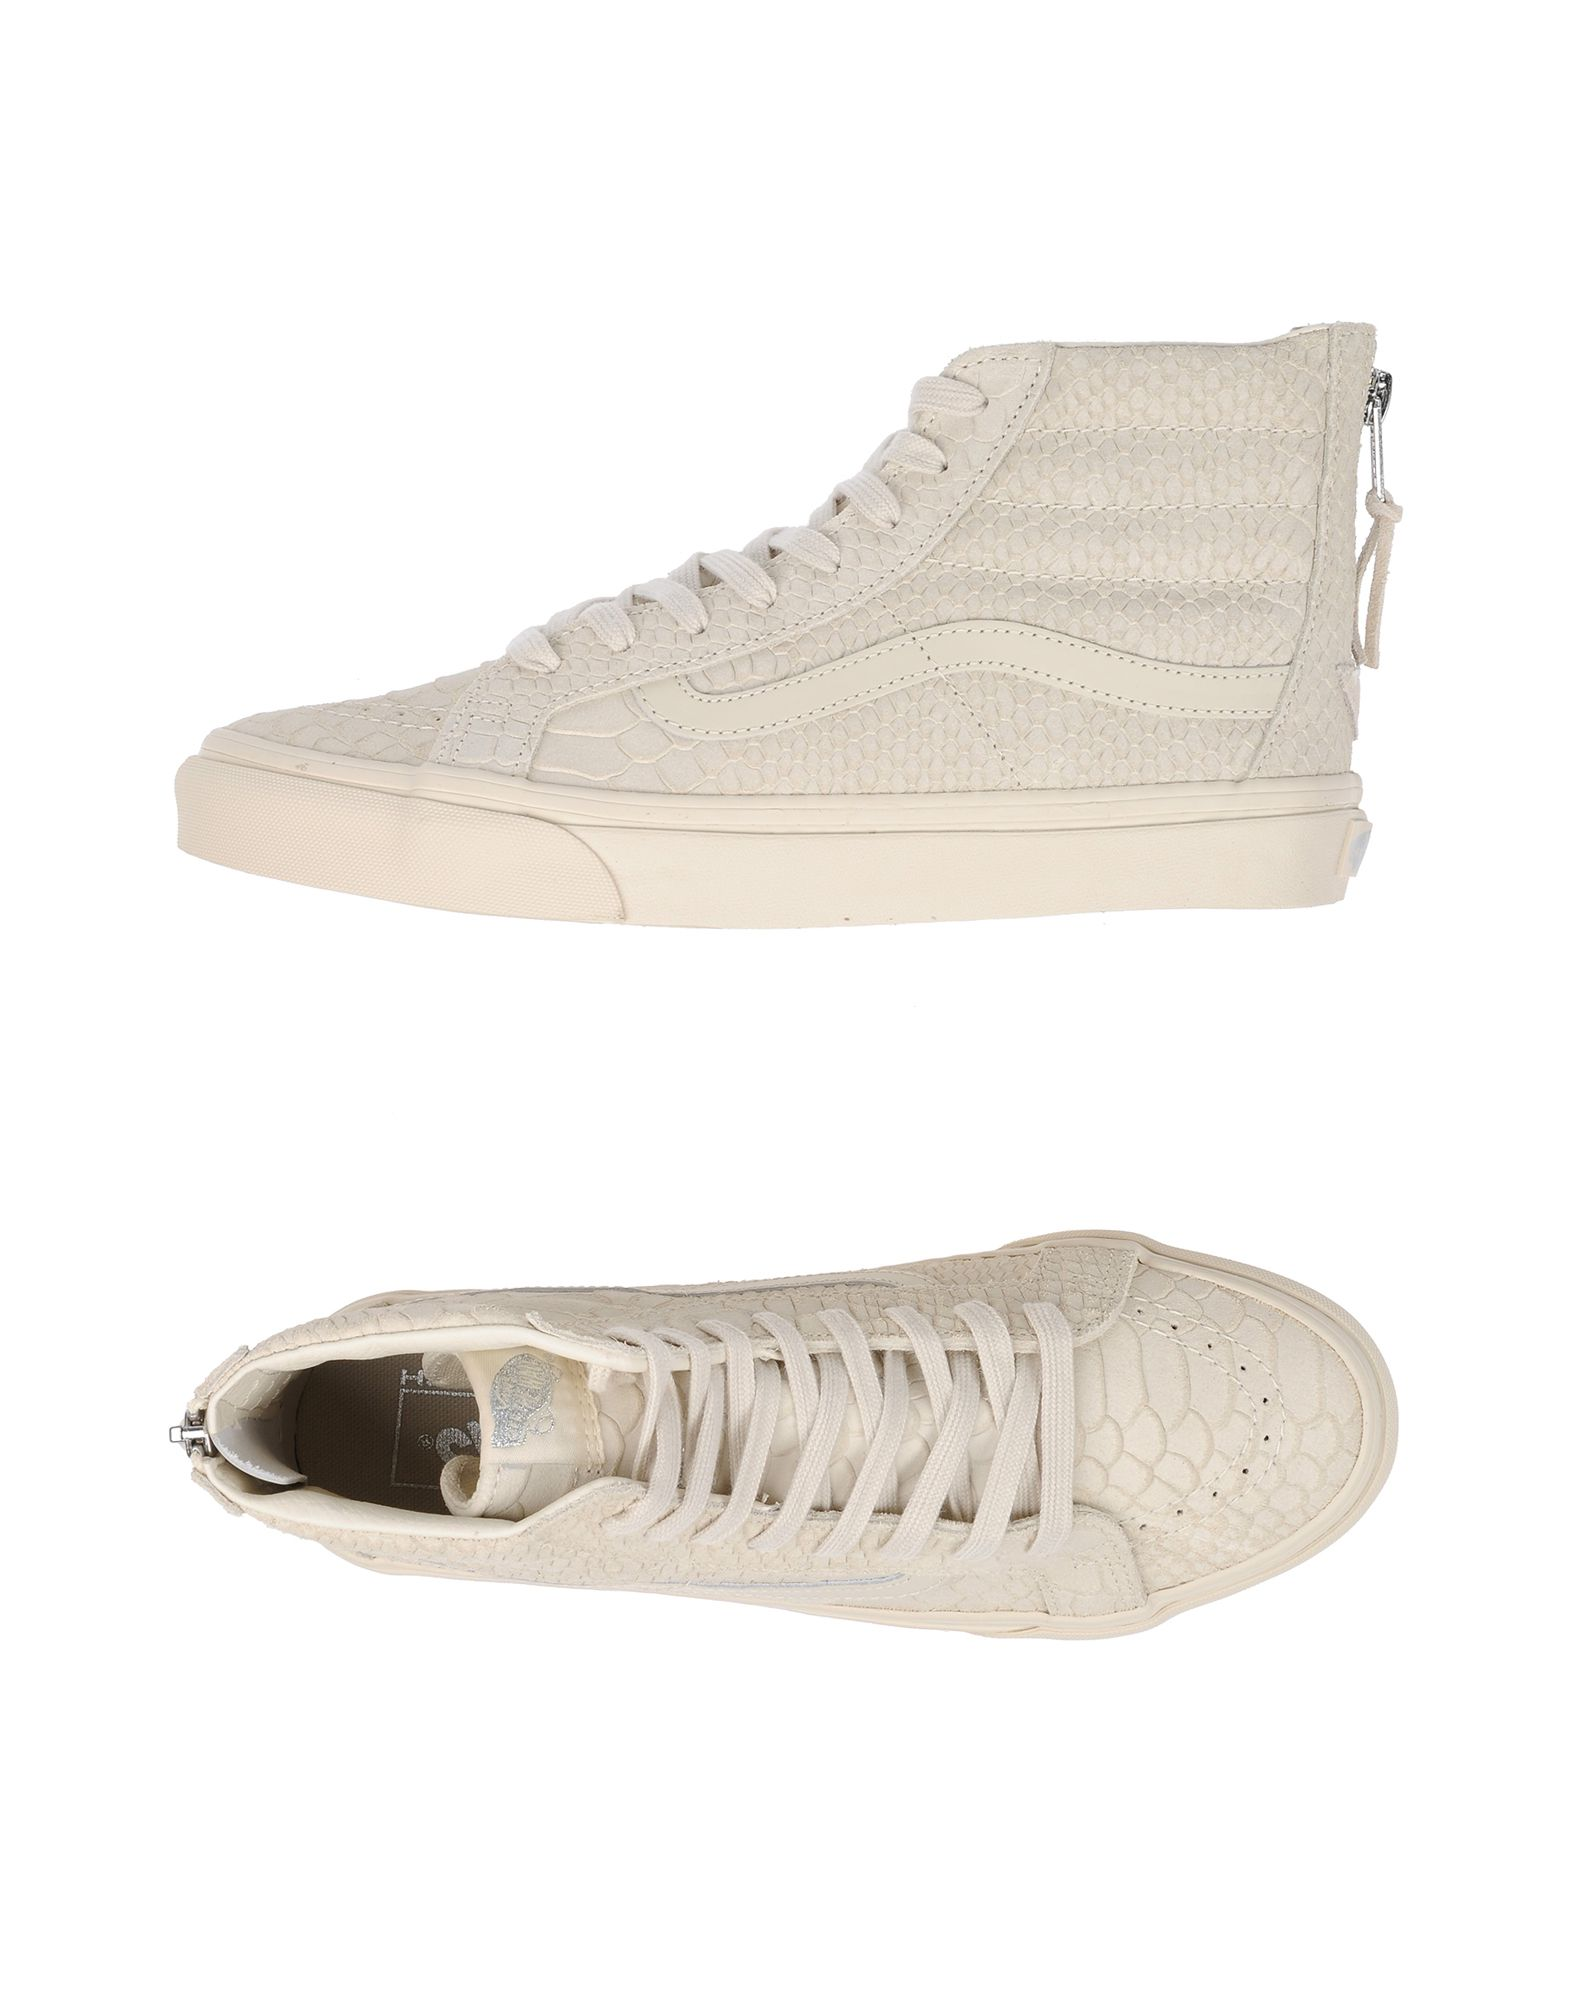 Sneakers Vans Slim U Sk8-Hi Slim Vans Zip Dx Mono Python A - Donna - 11141050AM cc7103